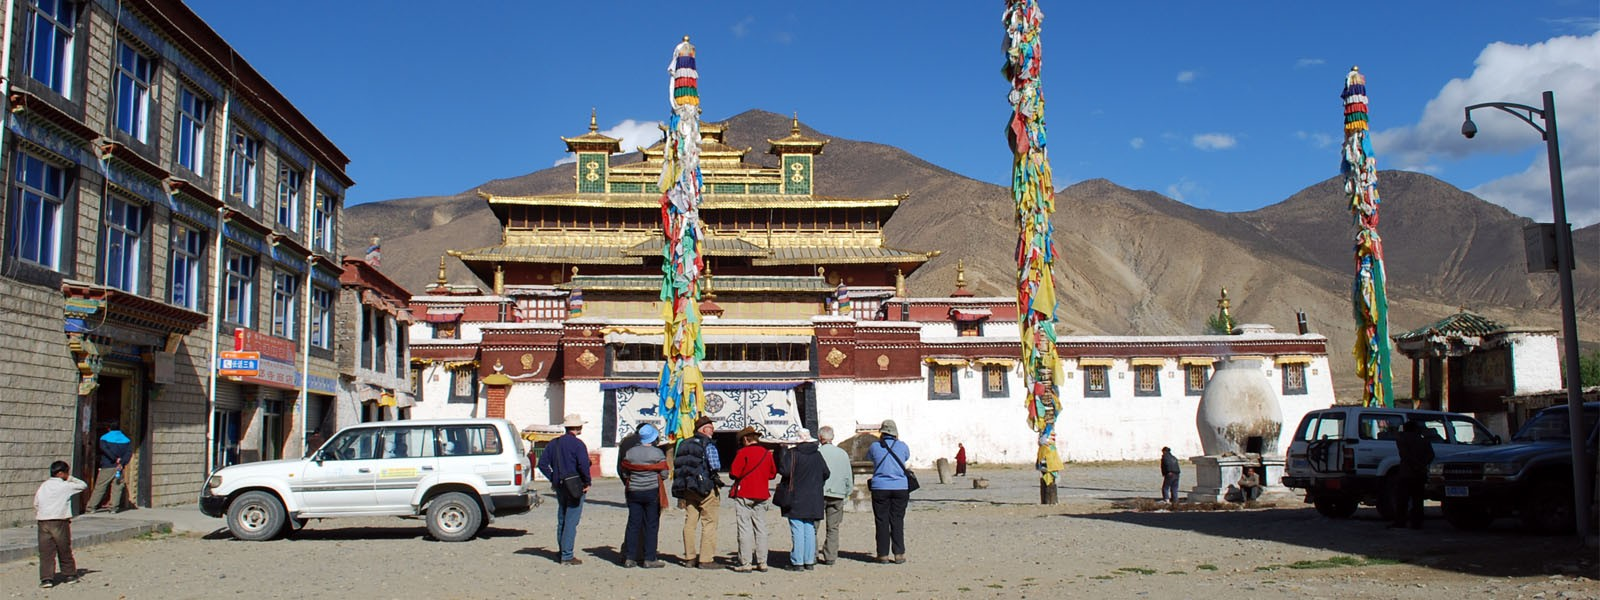 Lhasa, Everest Base Camp and Kathmandu Overland Tour